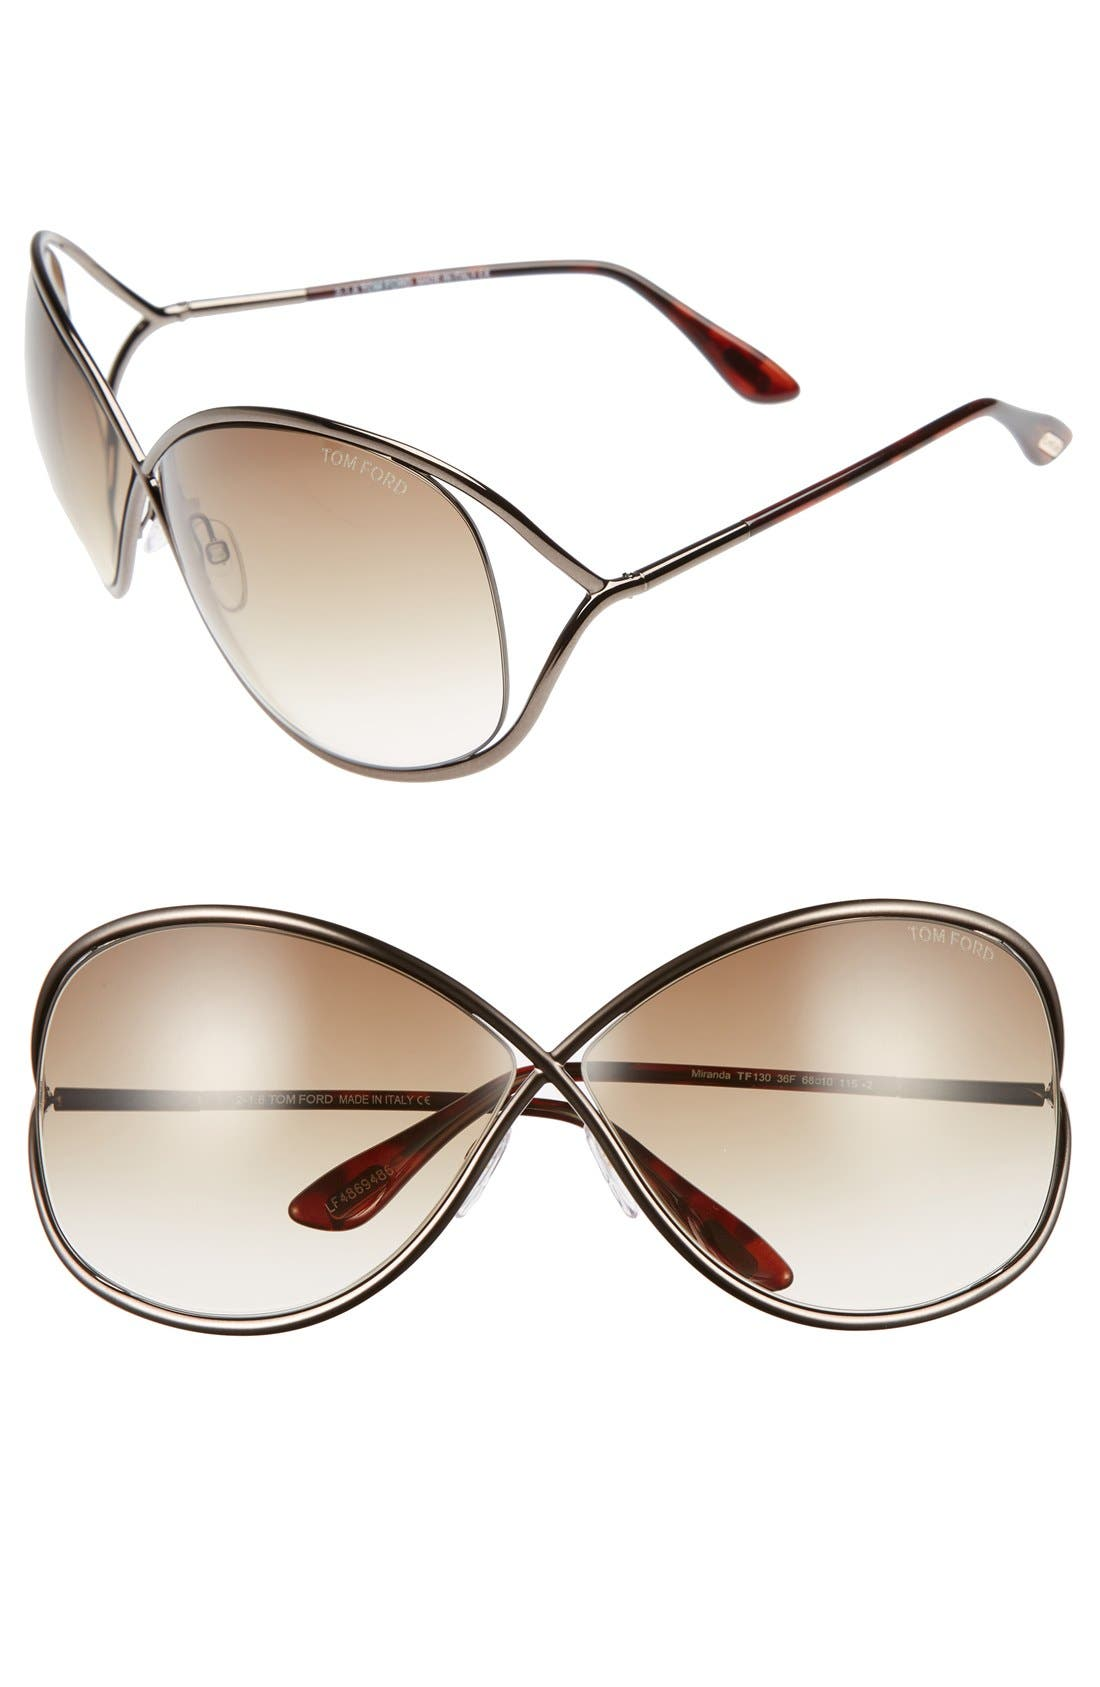 Tom Ford Miranda 68mm Open Temple Oversize Metal Sunglasses